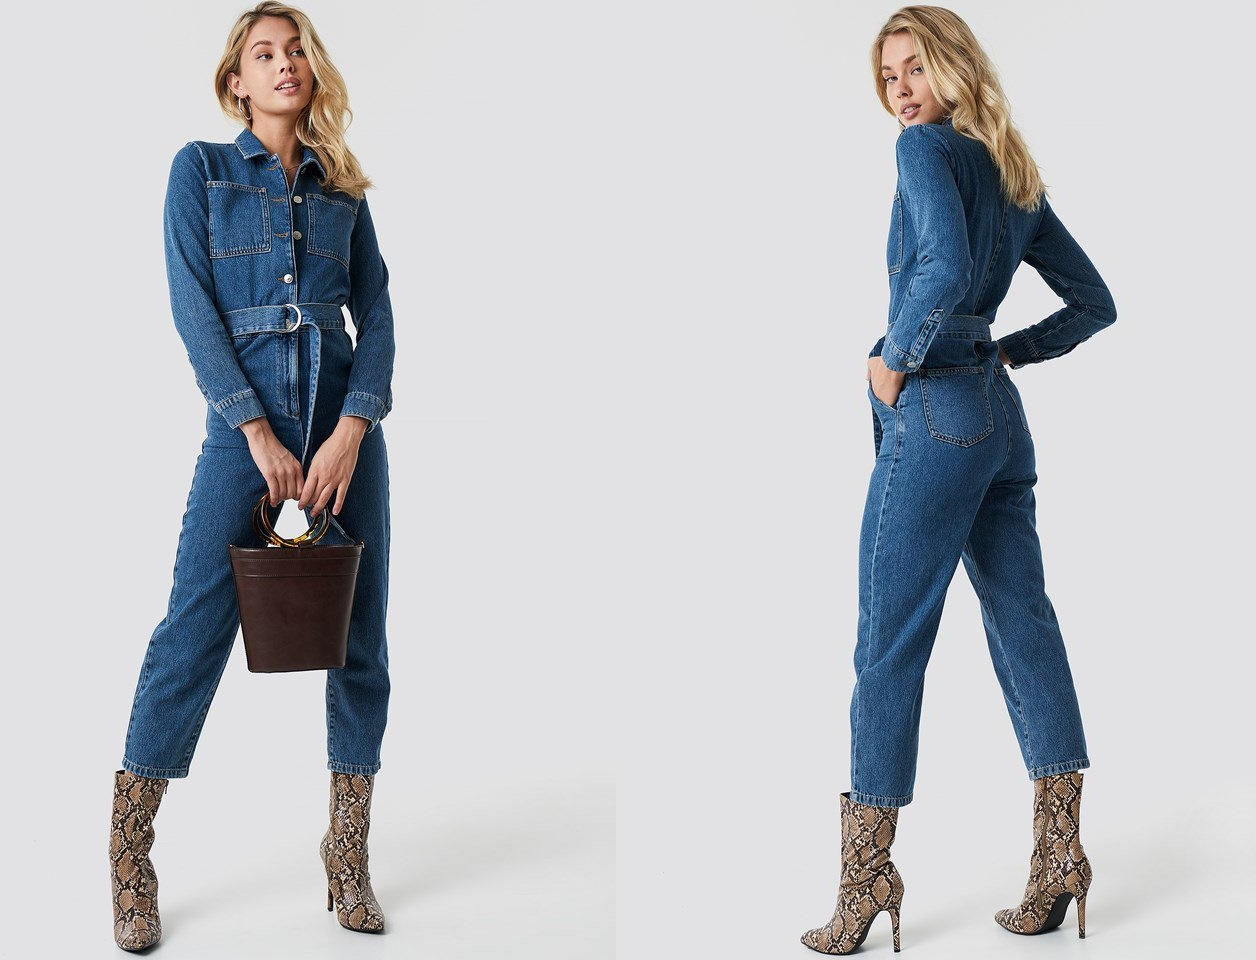 nakd_waist_belt_denim_jumpsuit_1100-001358-0003_01c